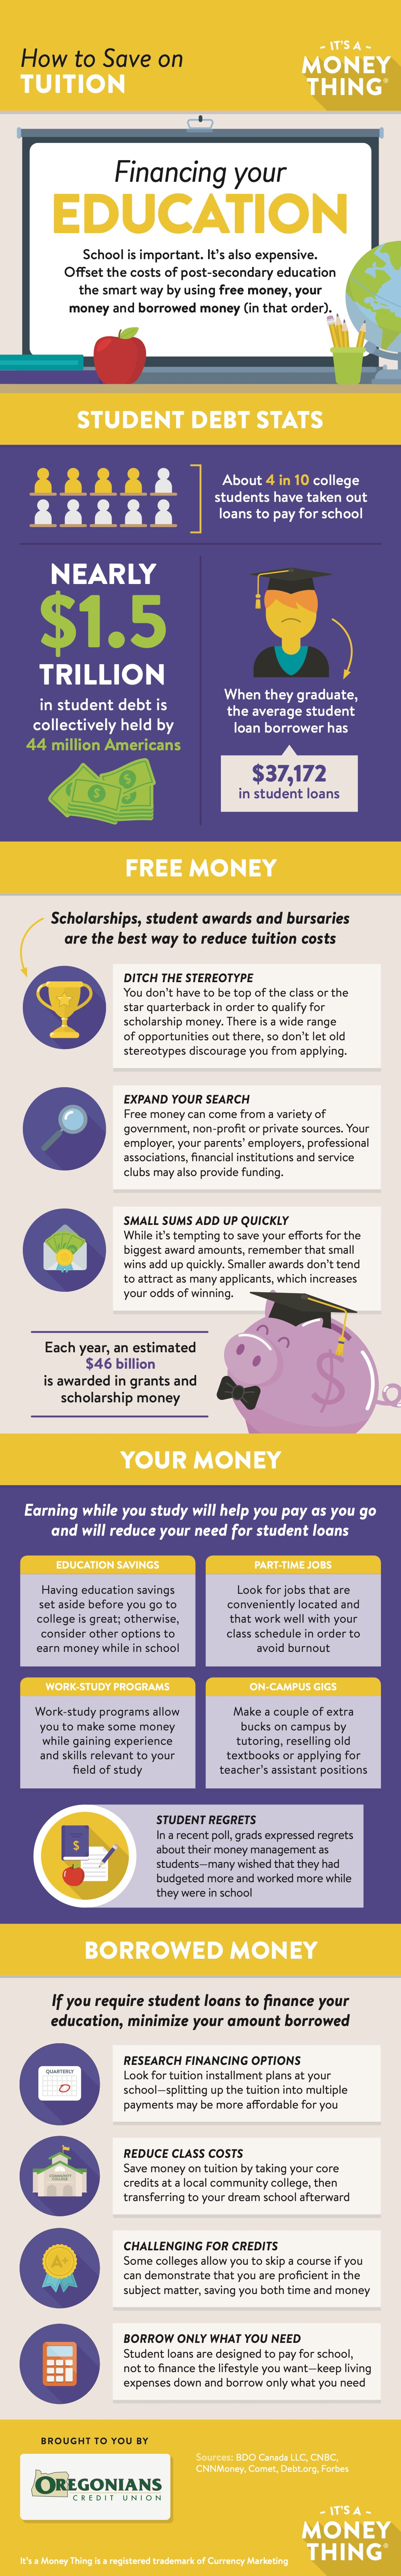 How to save on tuition infographic